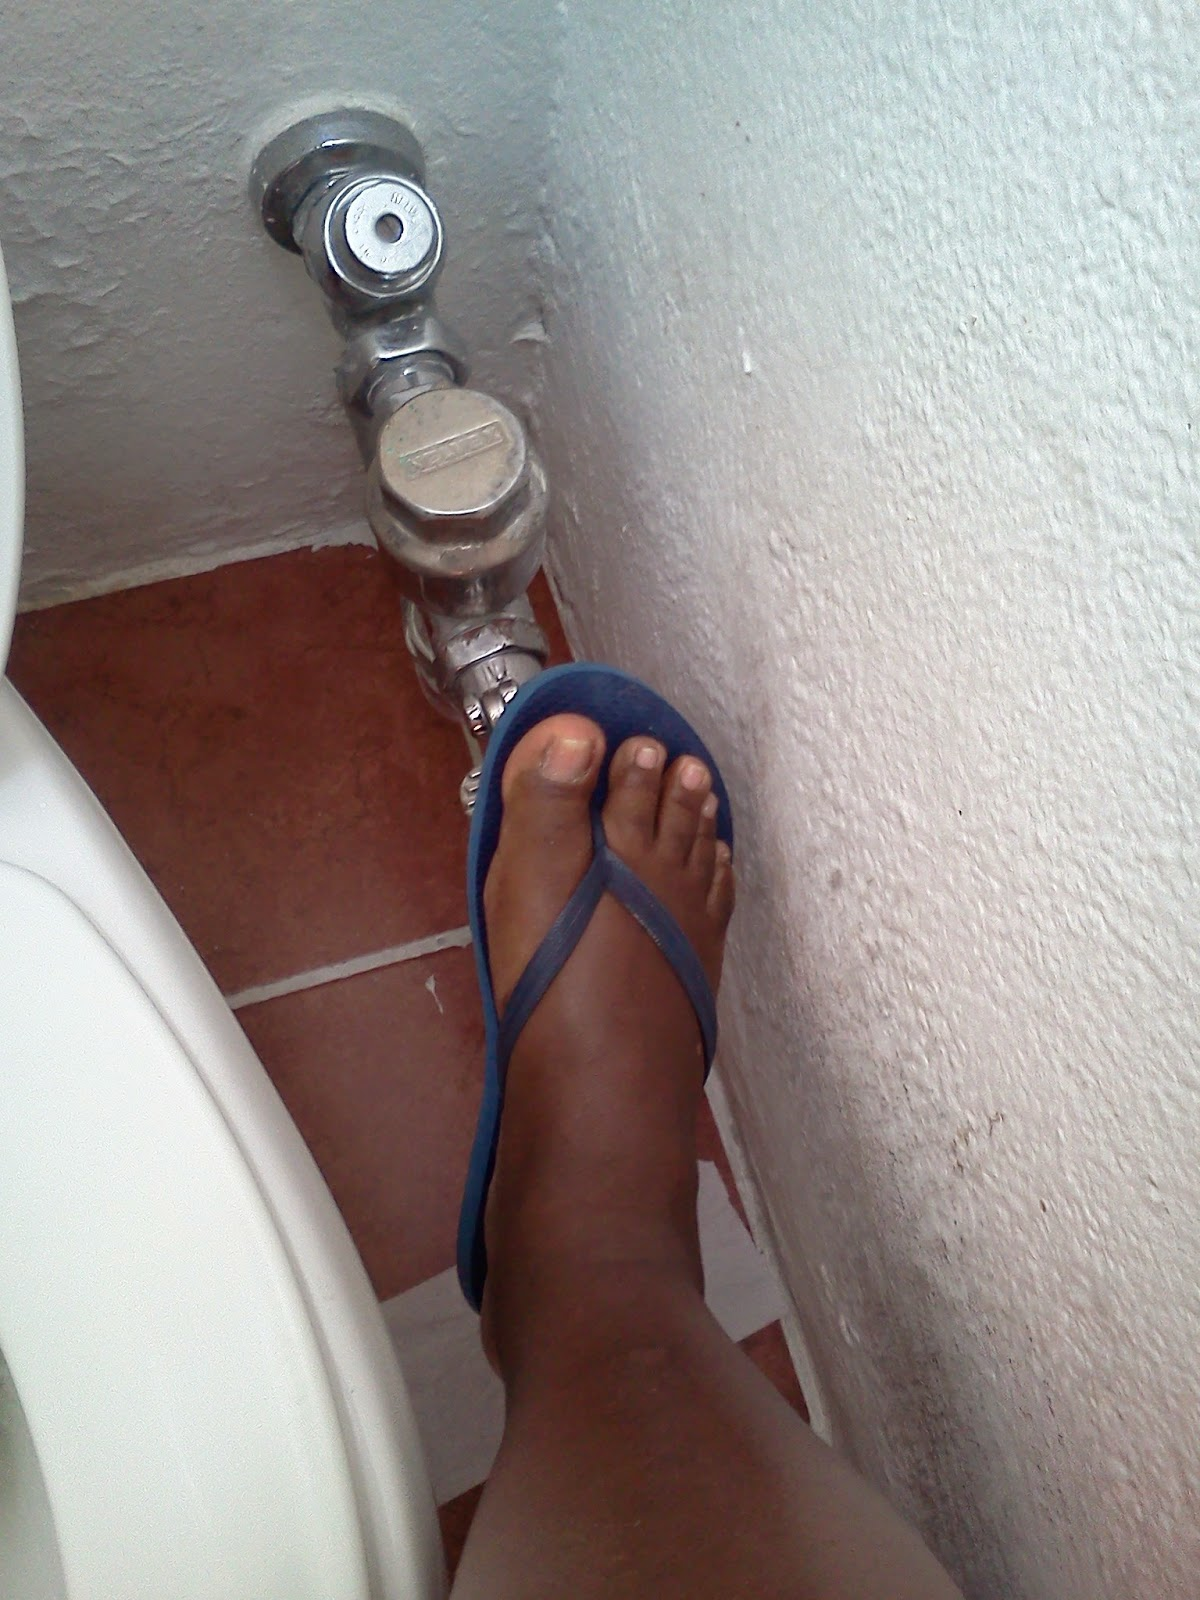 Push the pedal to flush the toilet with your feet.